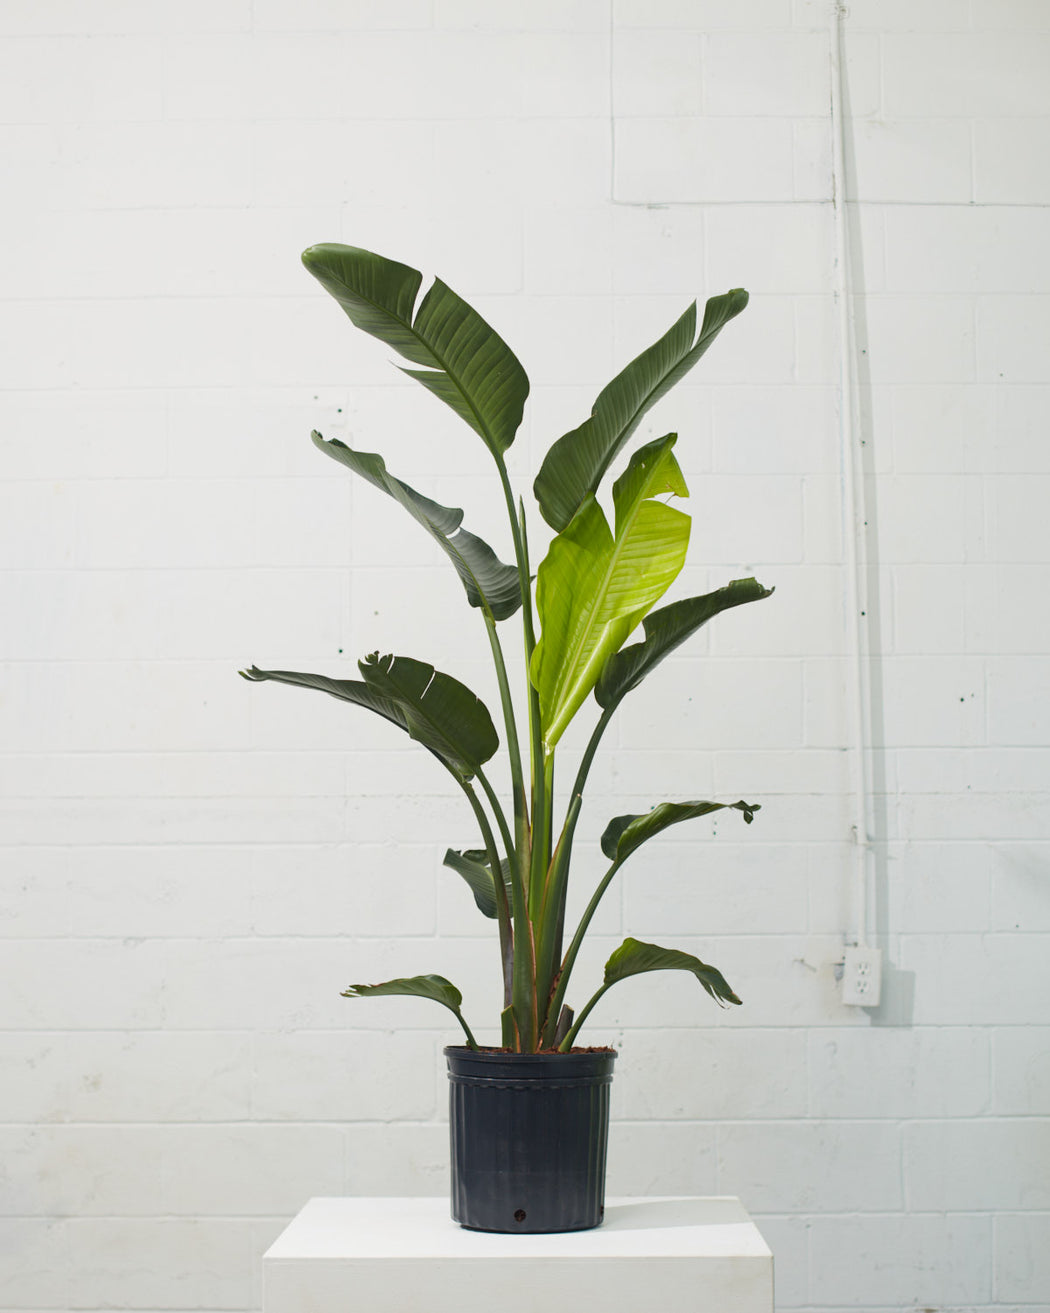 "'BIRD OF PARADISE' (STRELITZIA NICOLAI) 12"" Grower Pot (5ft tall)"